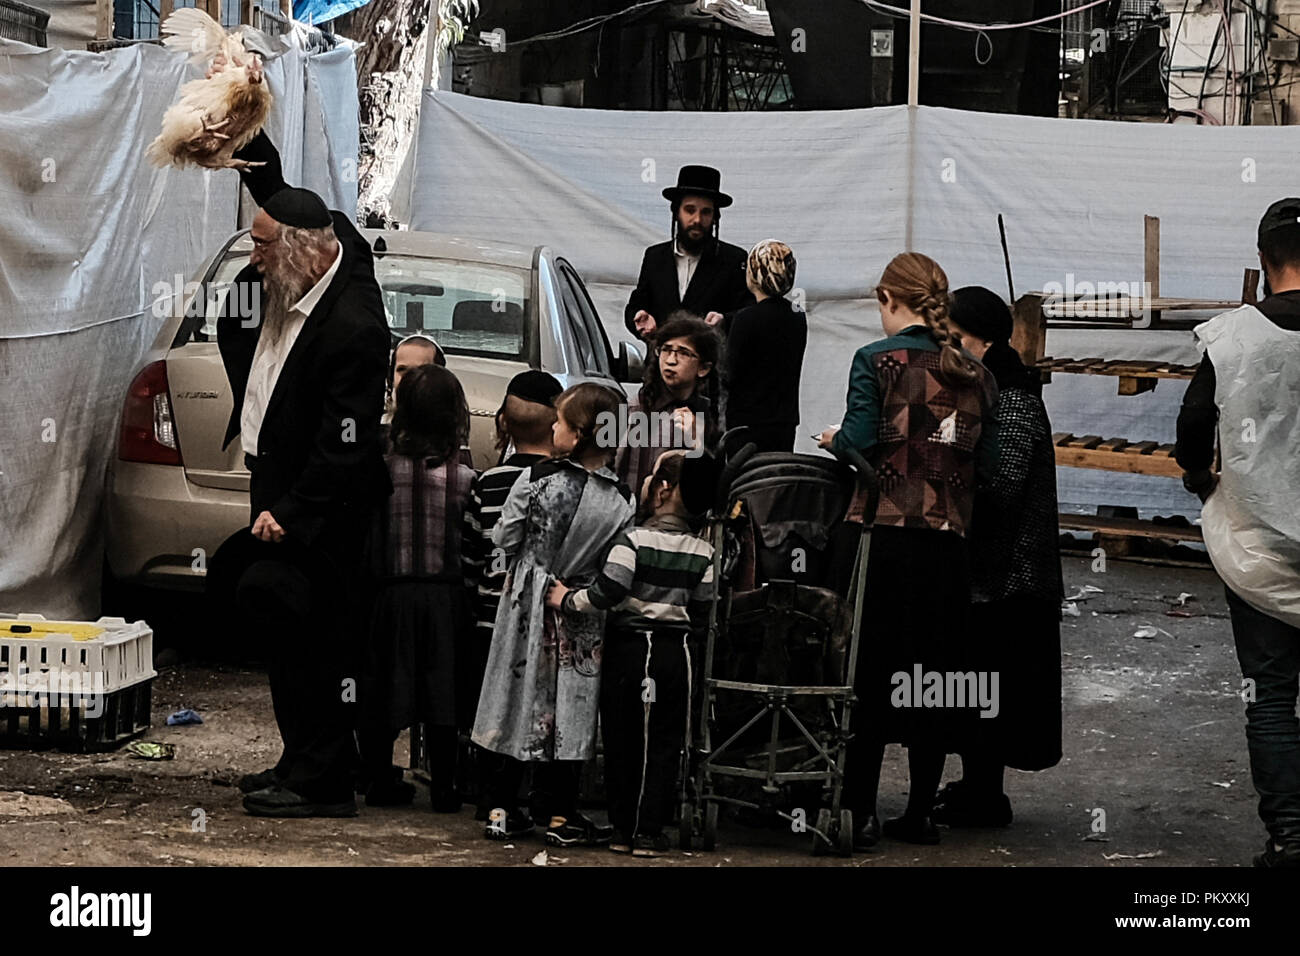 Jerusalem, Israel  16th September, 2018  Religious Jews